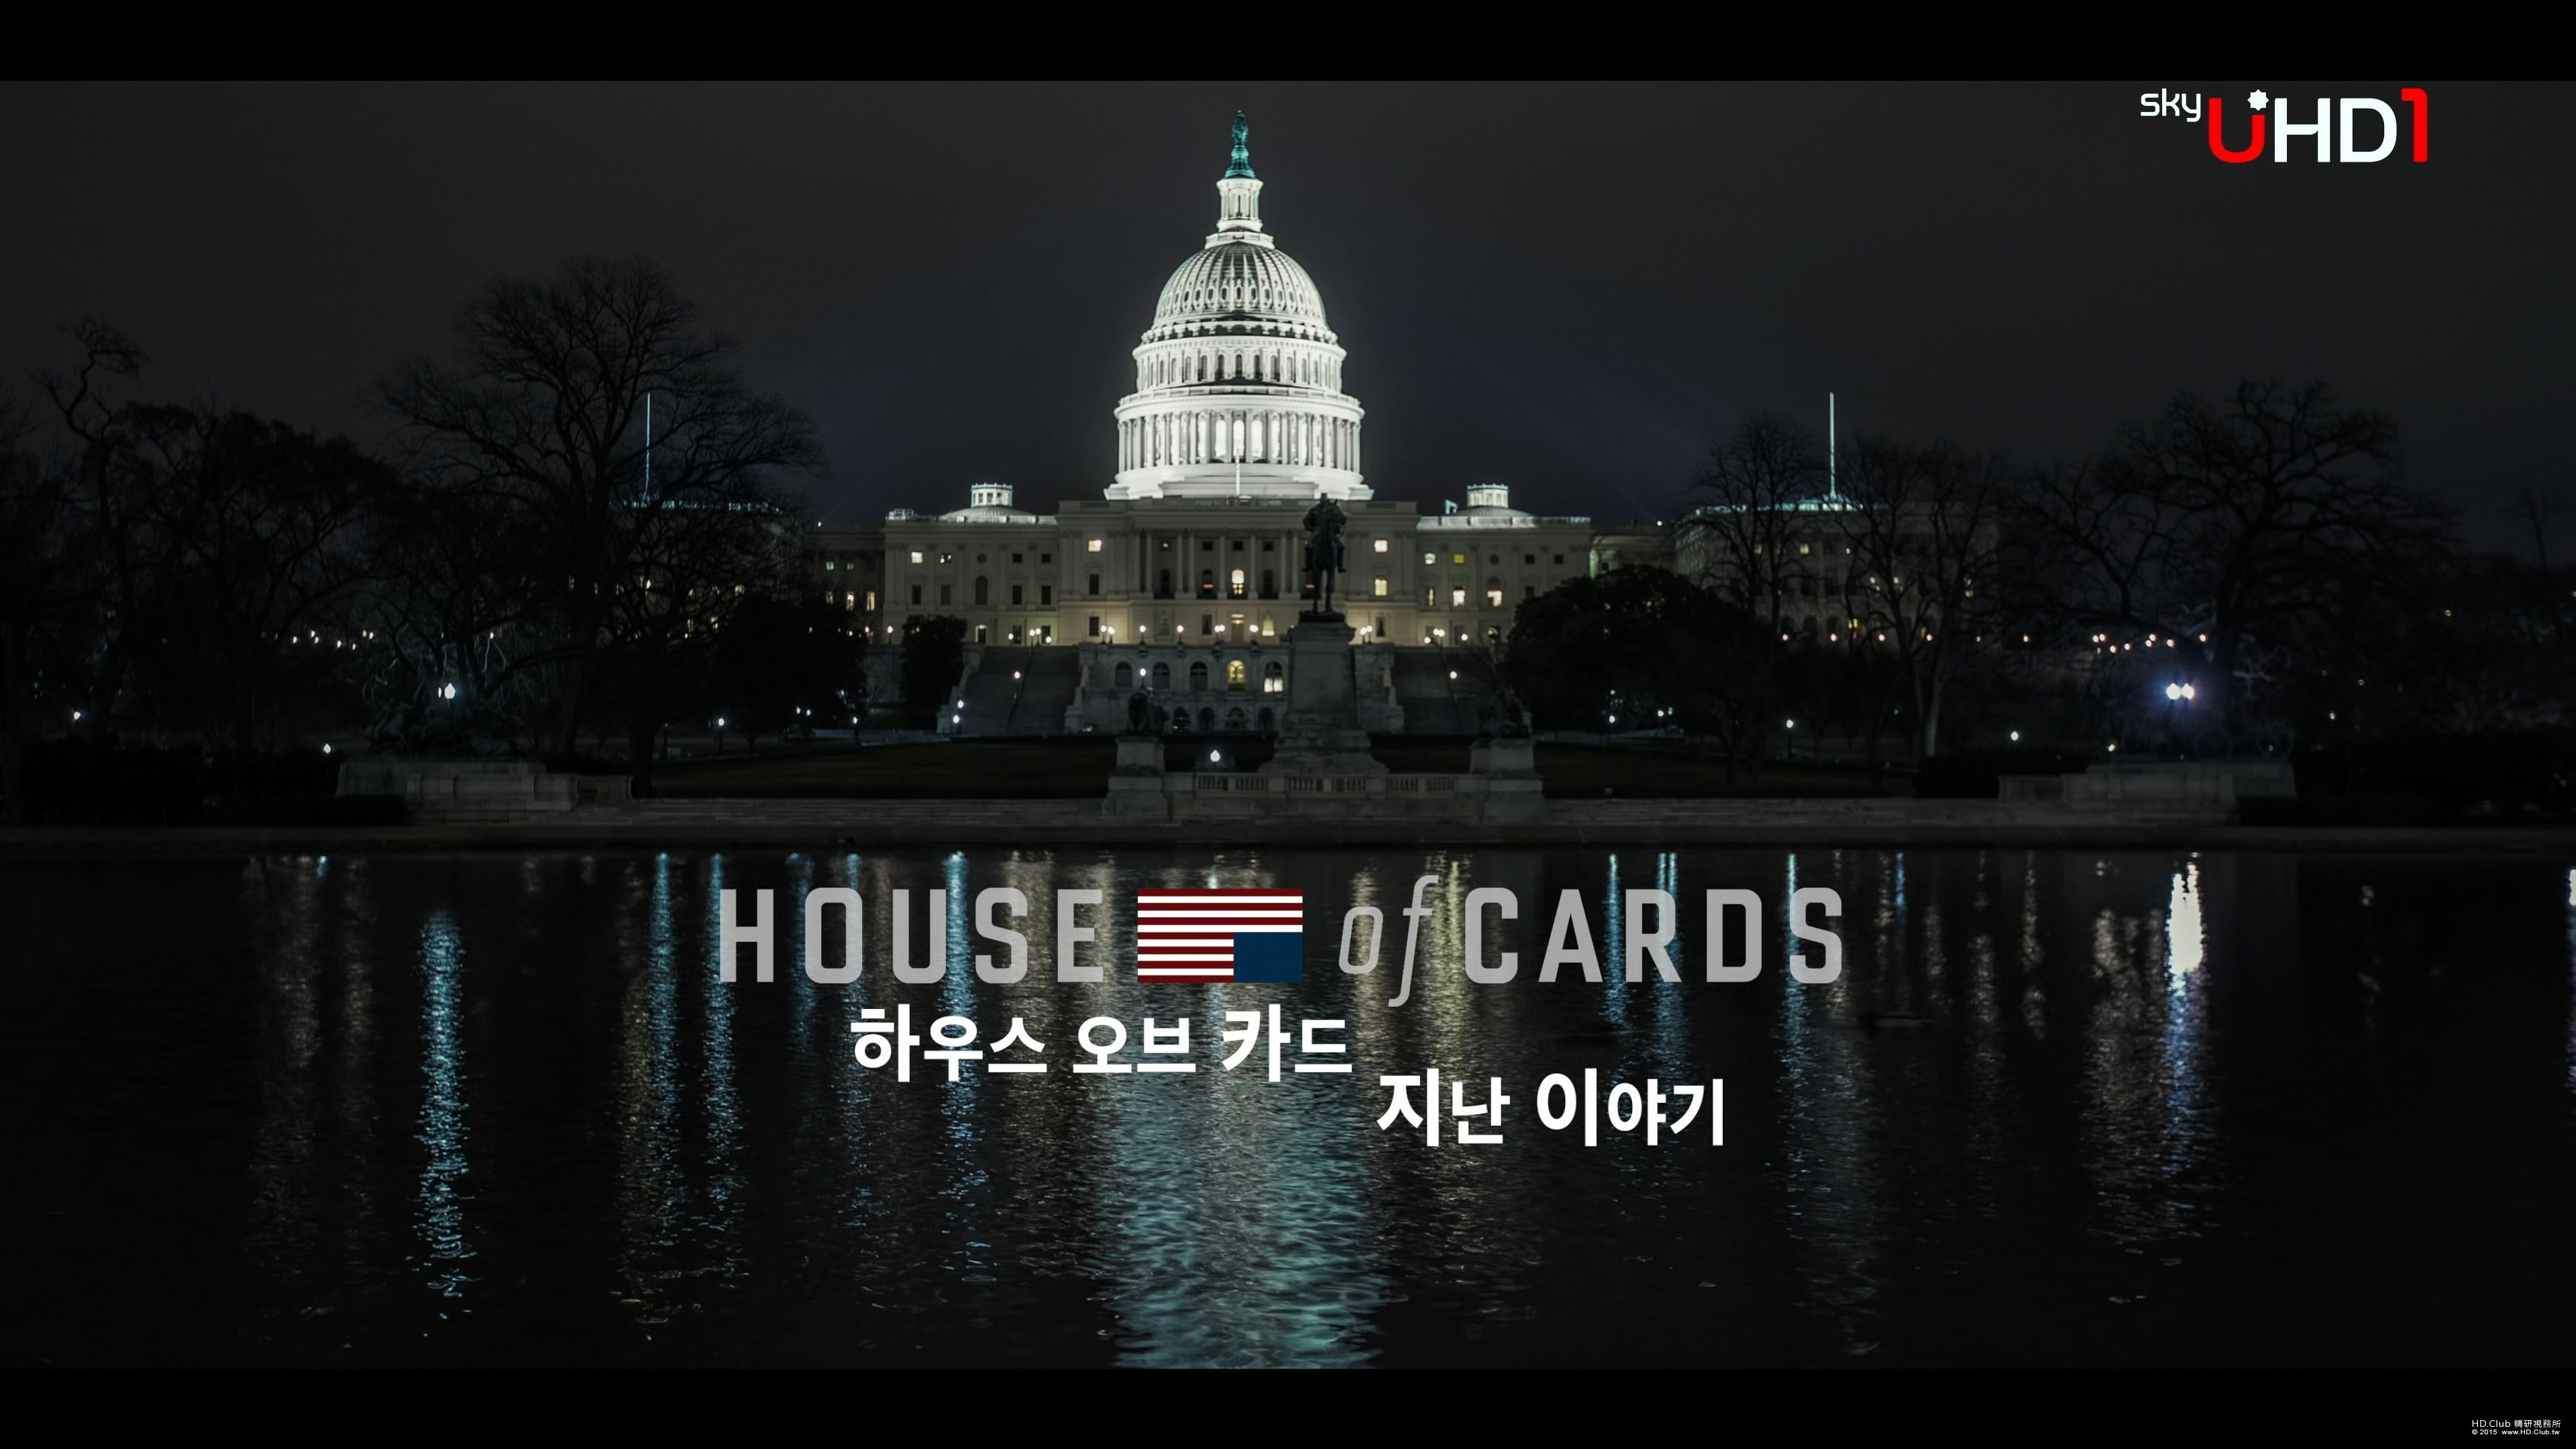 SkyUHD-House of Cards S02E09 2160p UHDTV AAC 2.0 HEVC-BtttS.ts_snapshot_01.42_[2.jpg